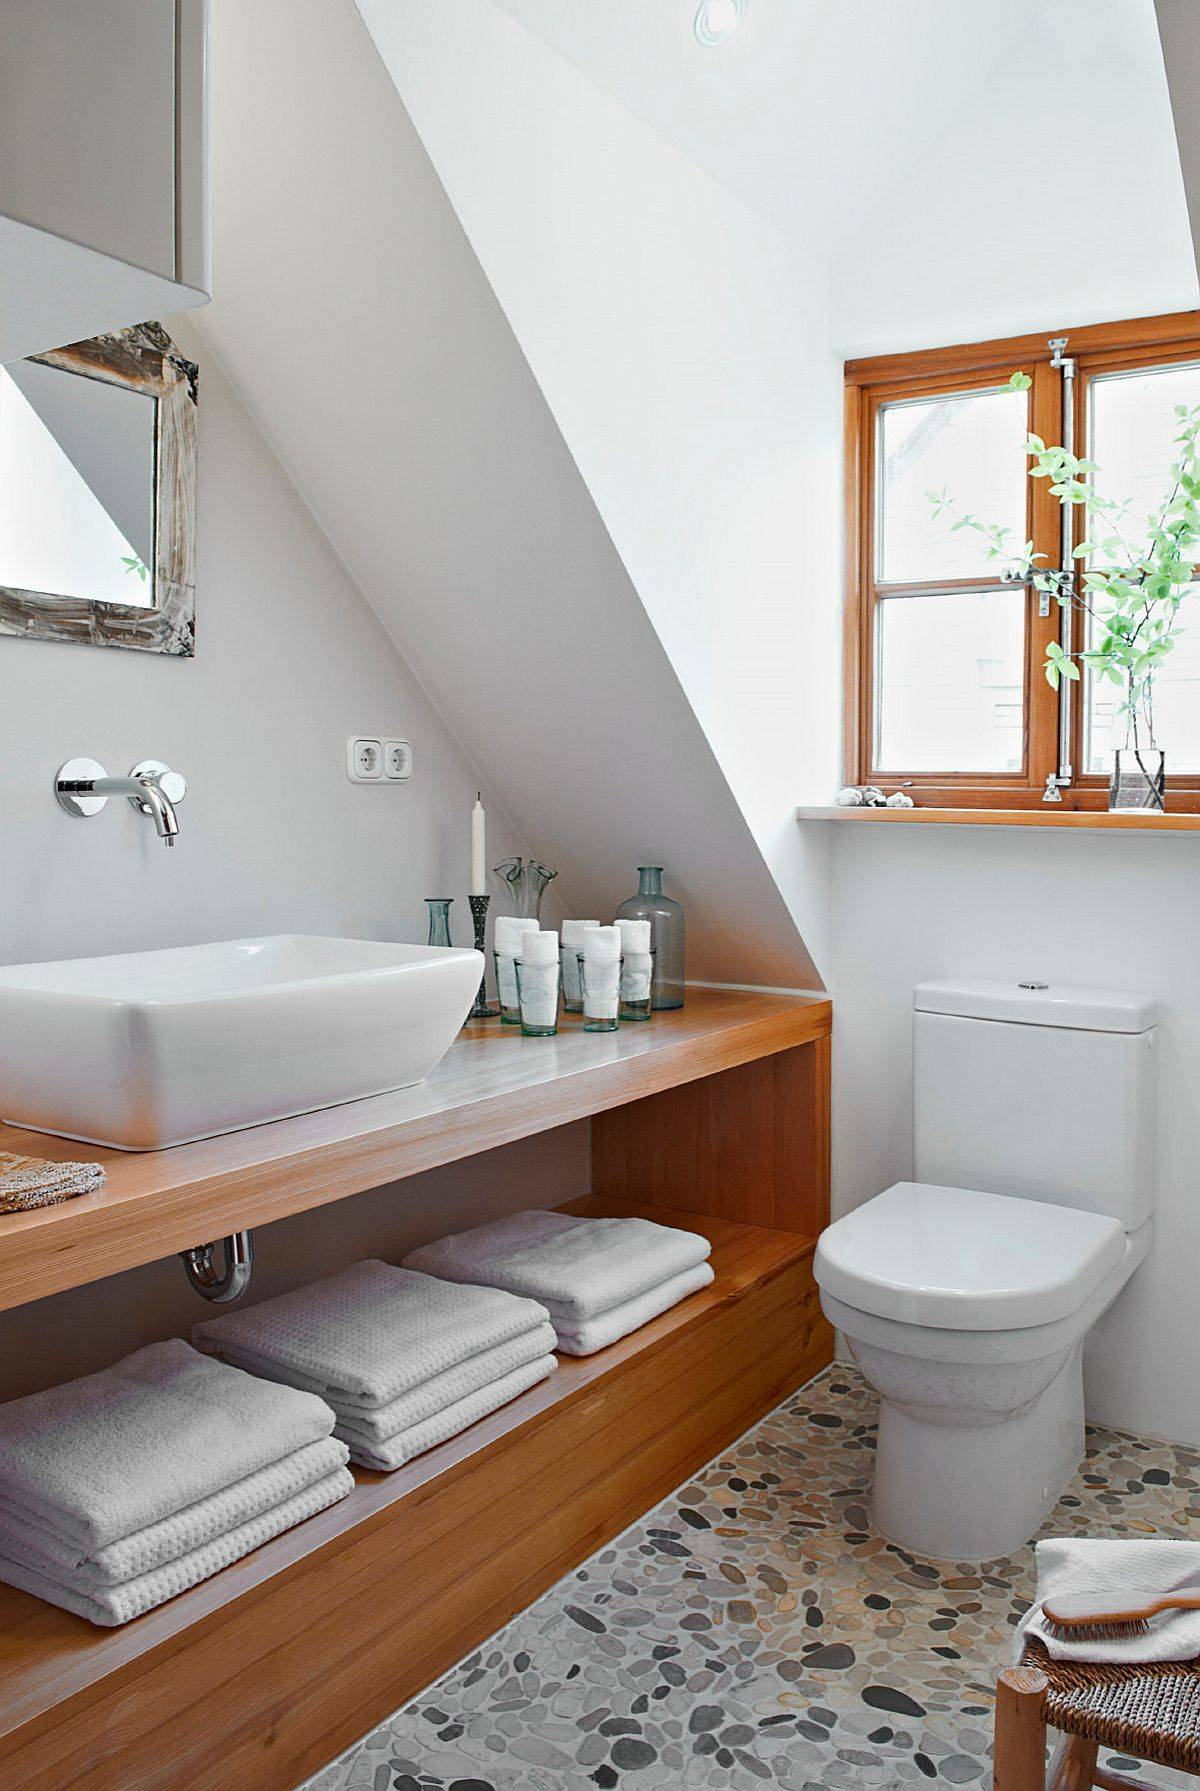 Small-wood-and-white-bathroom-with-terazzo-flooring-and-a-vanity-that-offers-ample-storage-space-79593